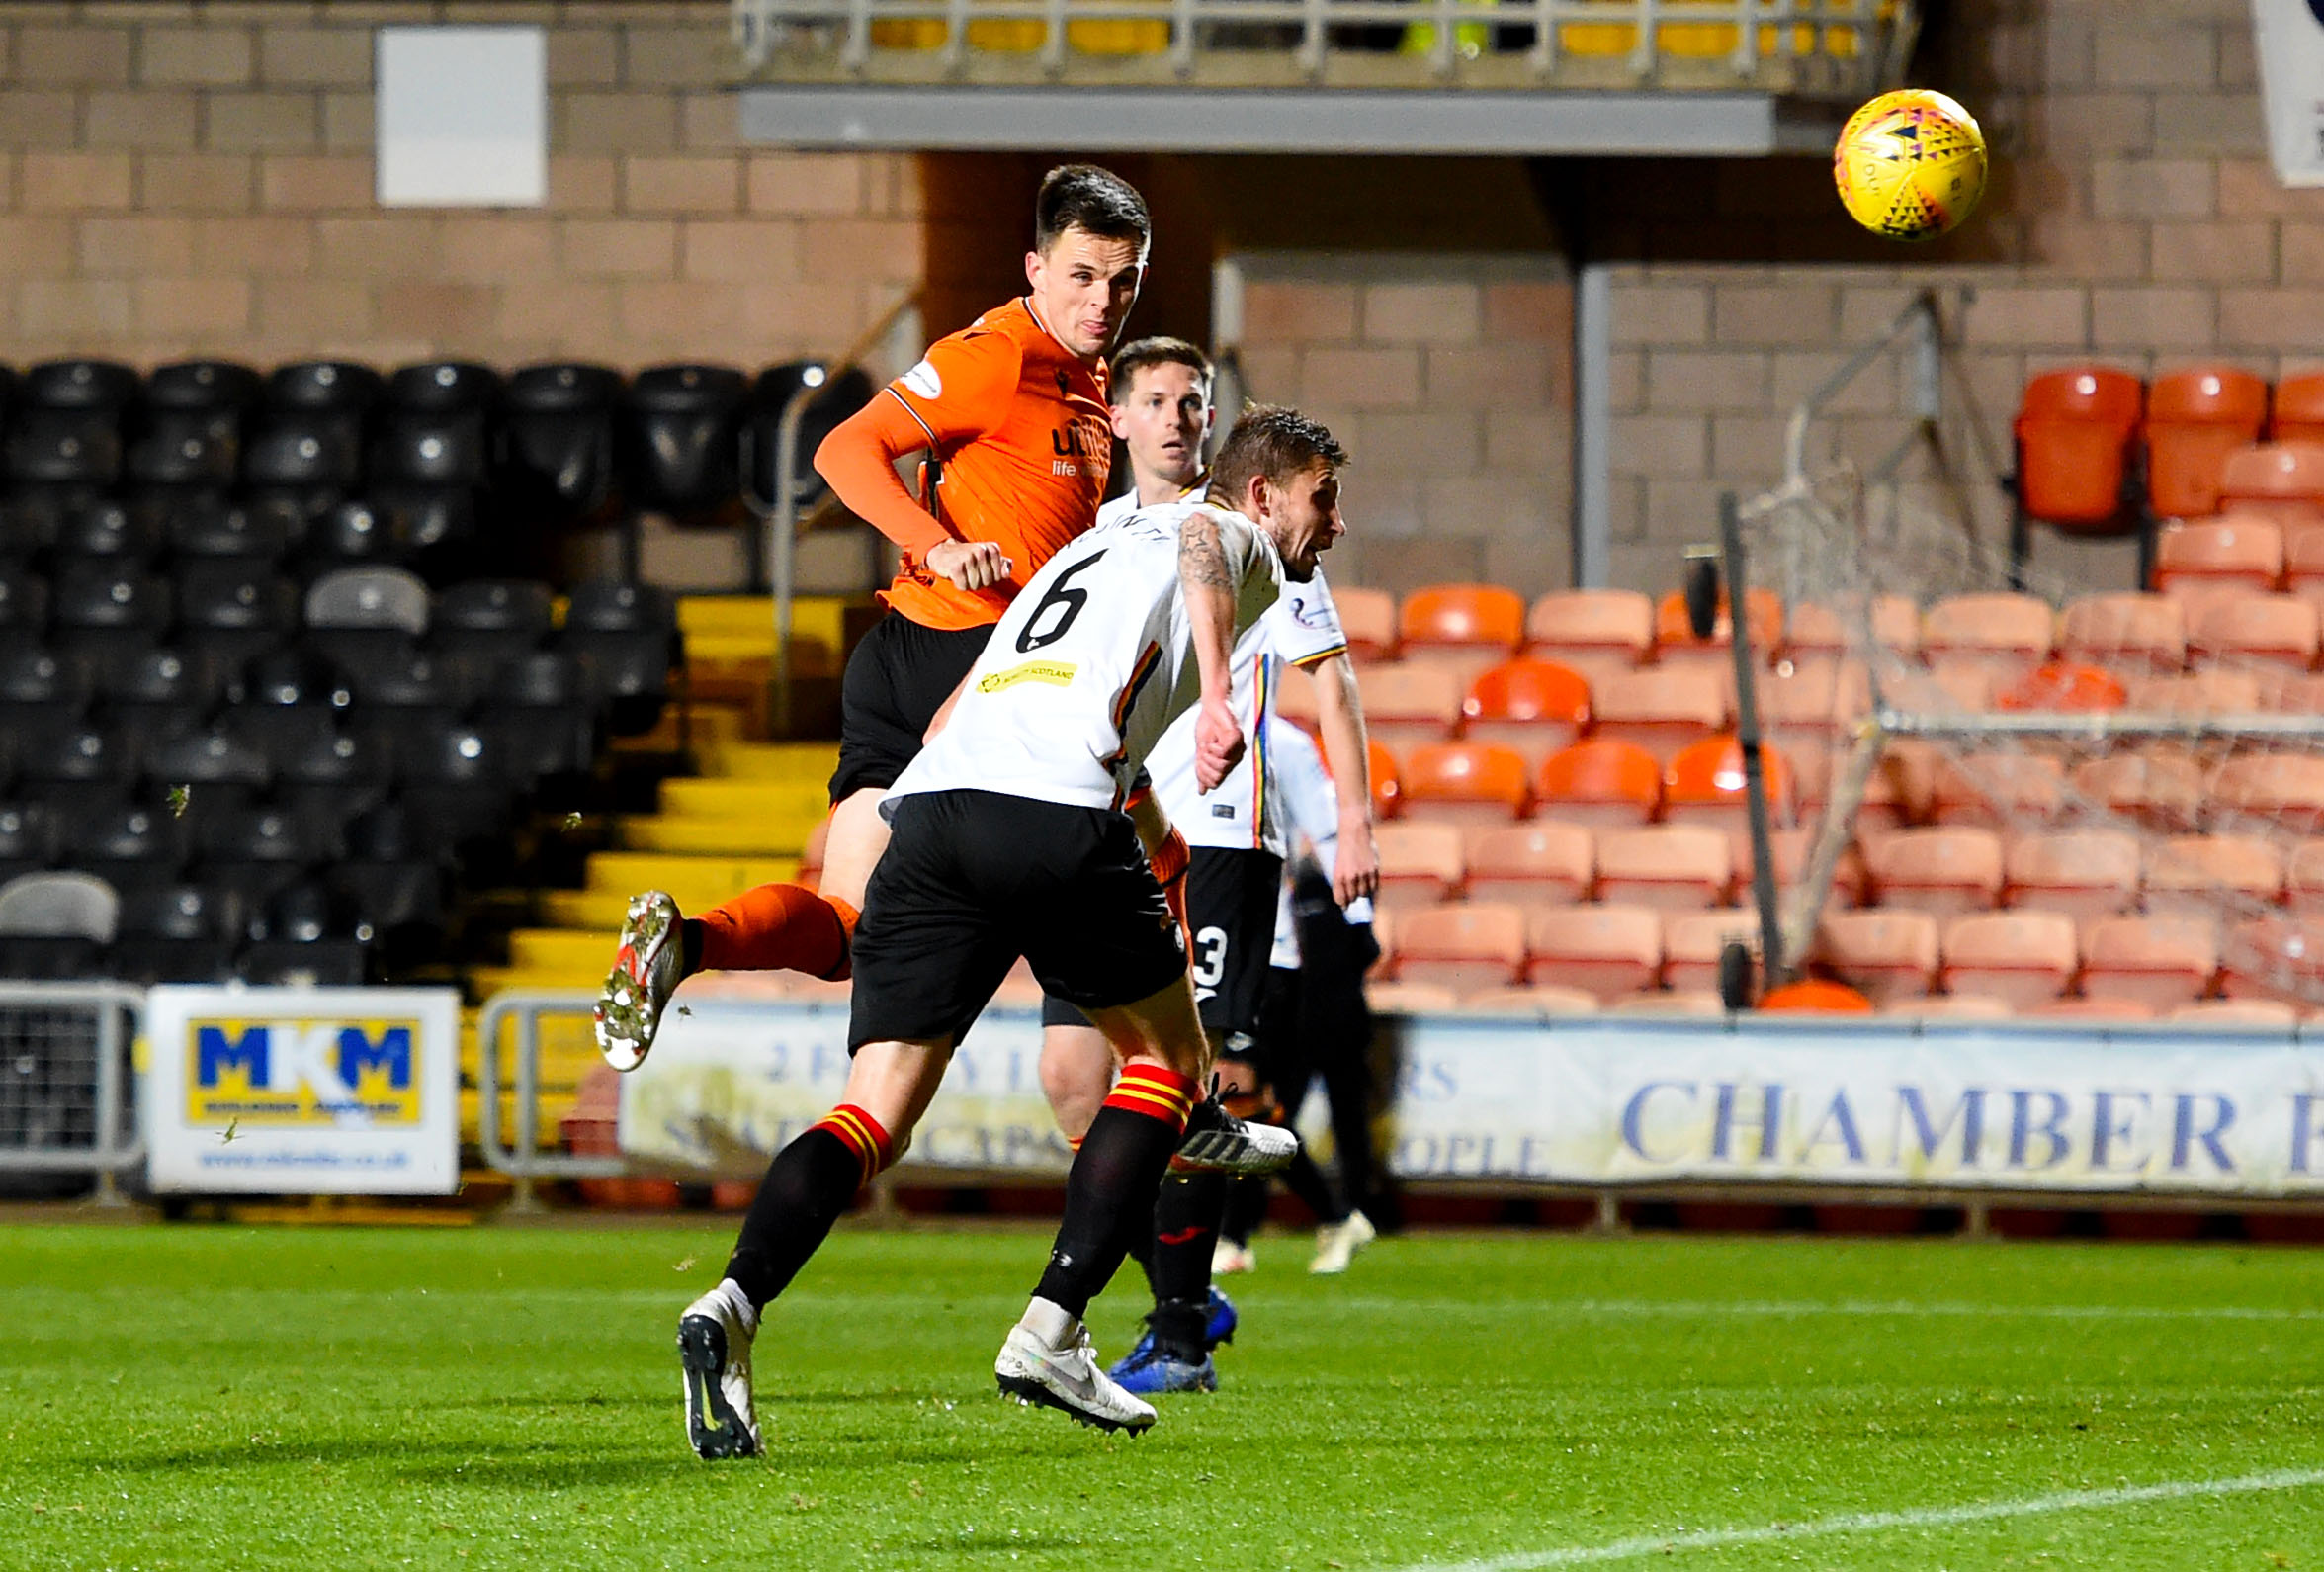 Lawrence Shankland makes it 1-0 to United.